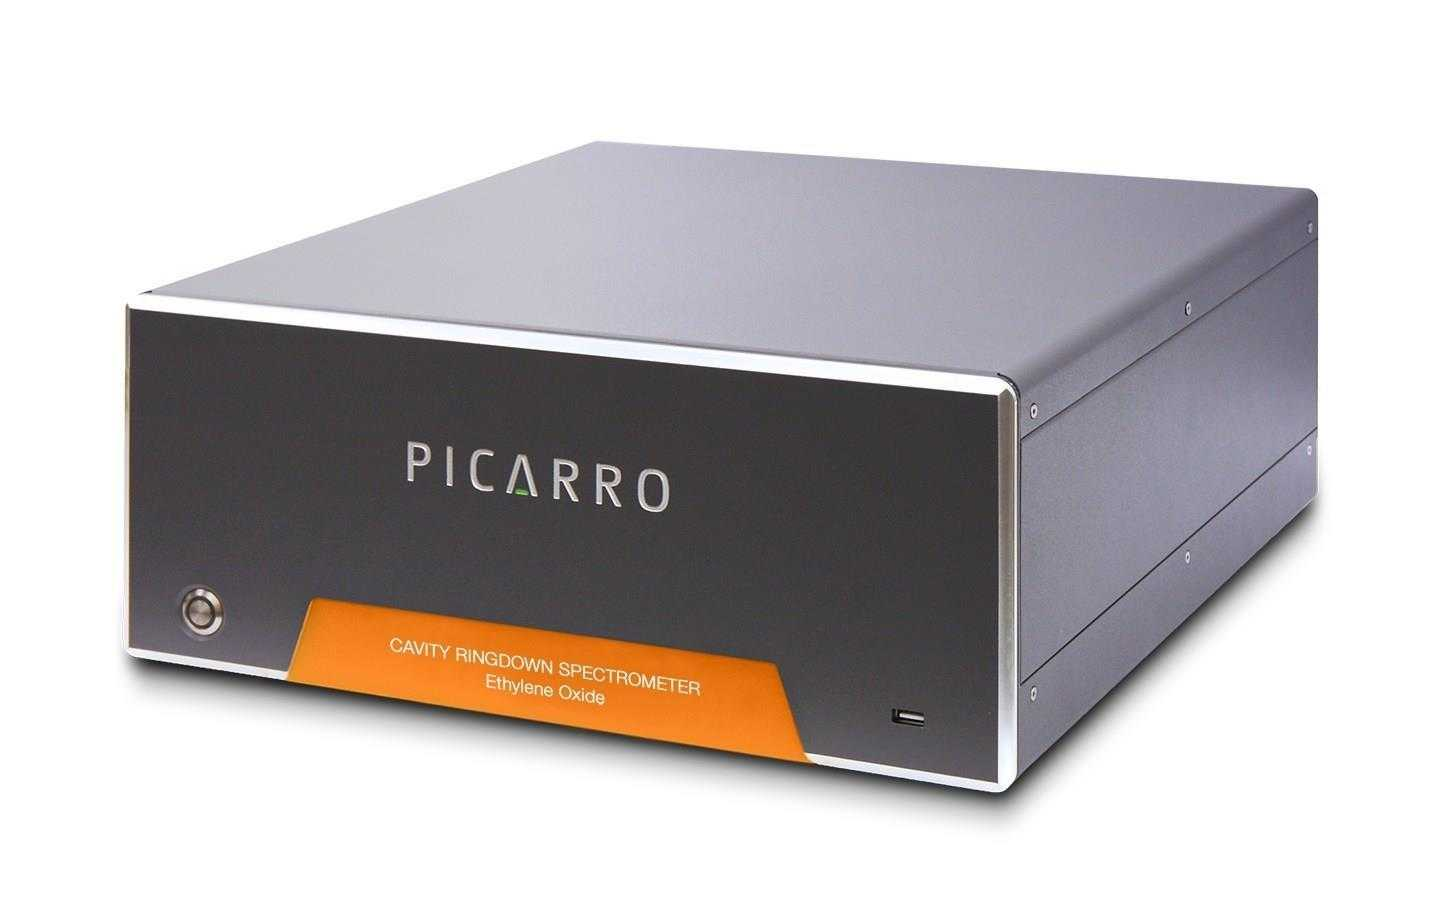 Picarro launches ethylene oxide analysers